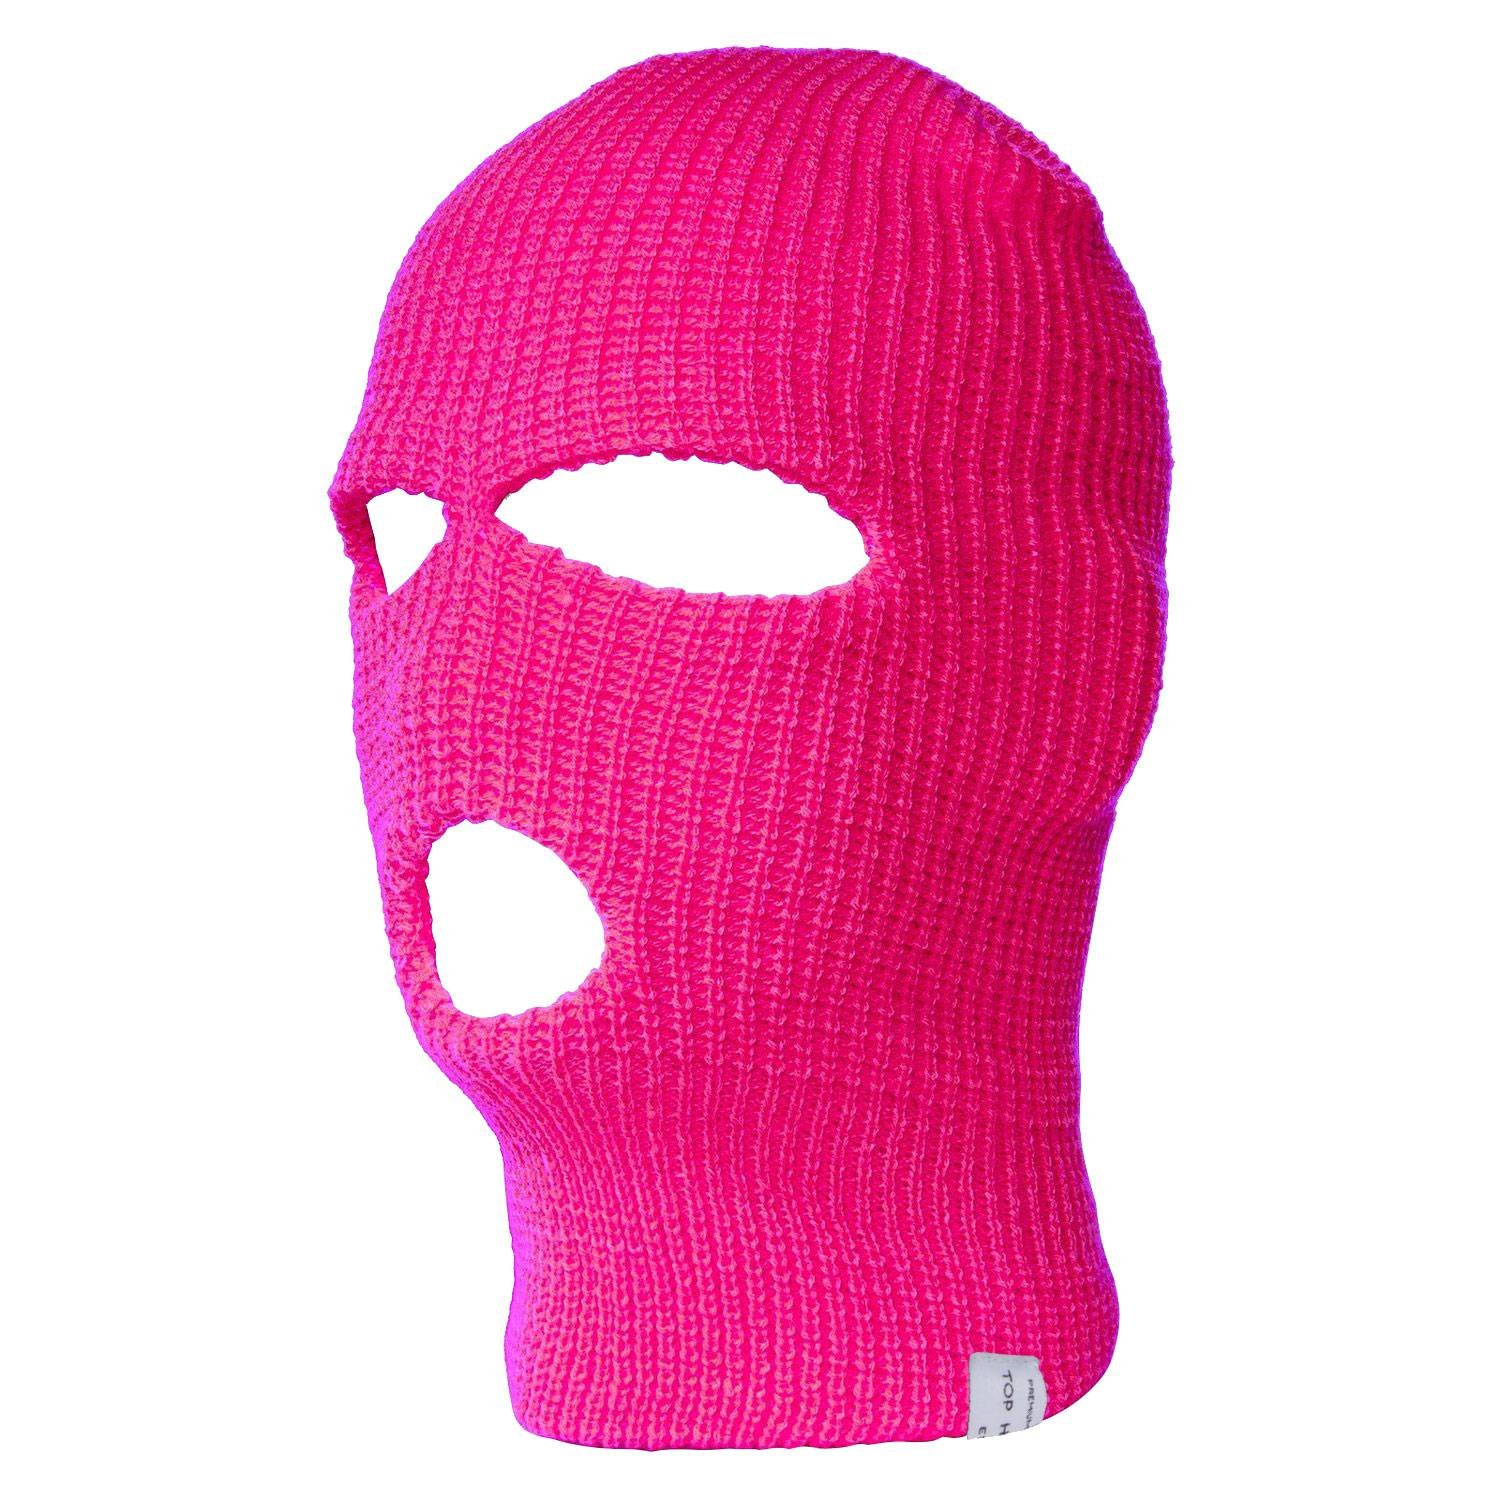 TopHeadwear 3-Hole Ski Face Mask Balaclava, Hot Pink TOP HEADWEAR